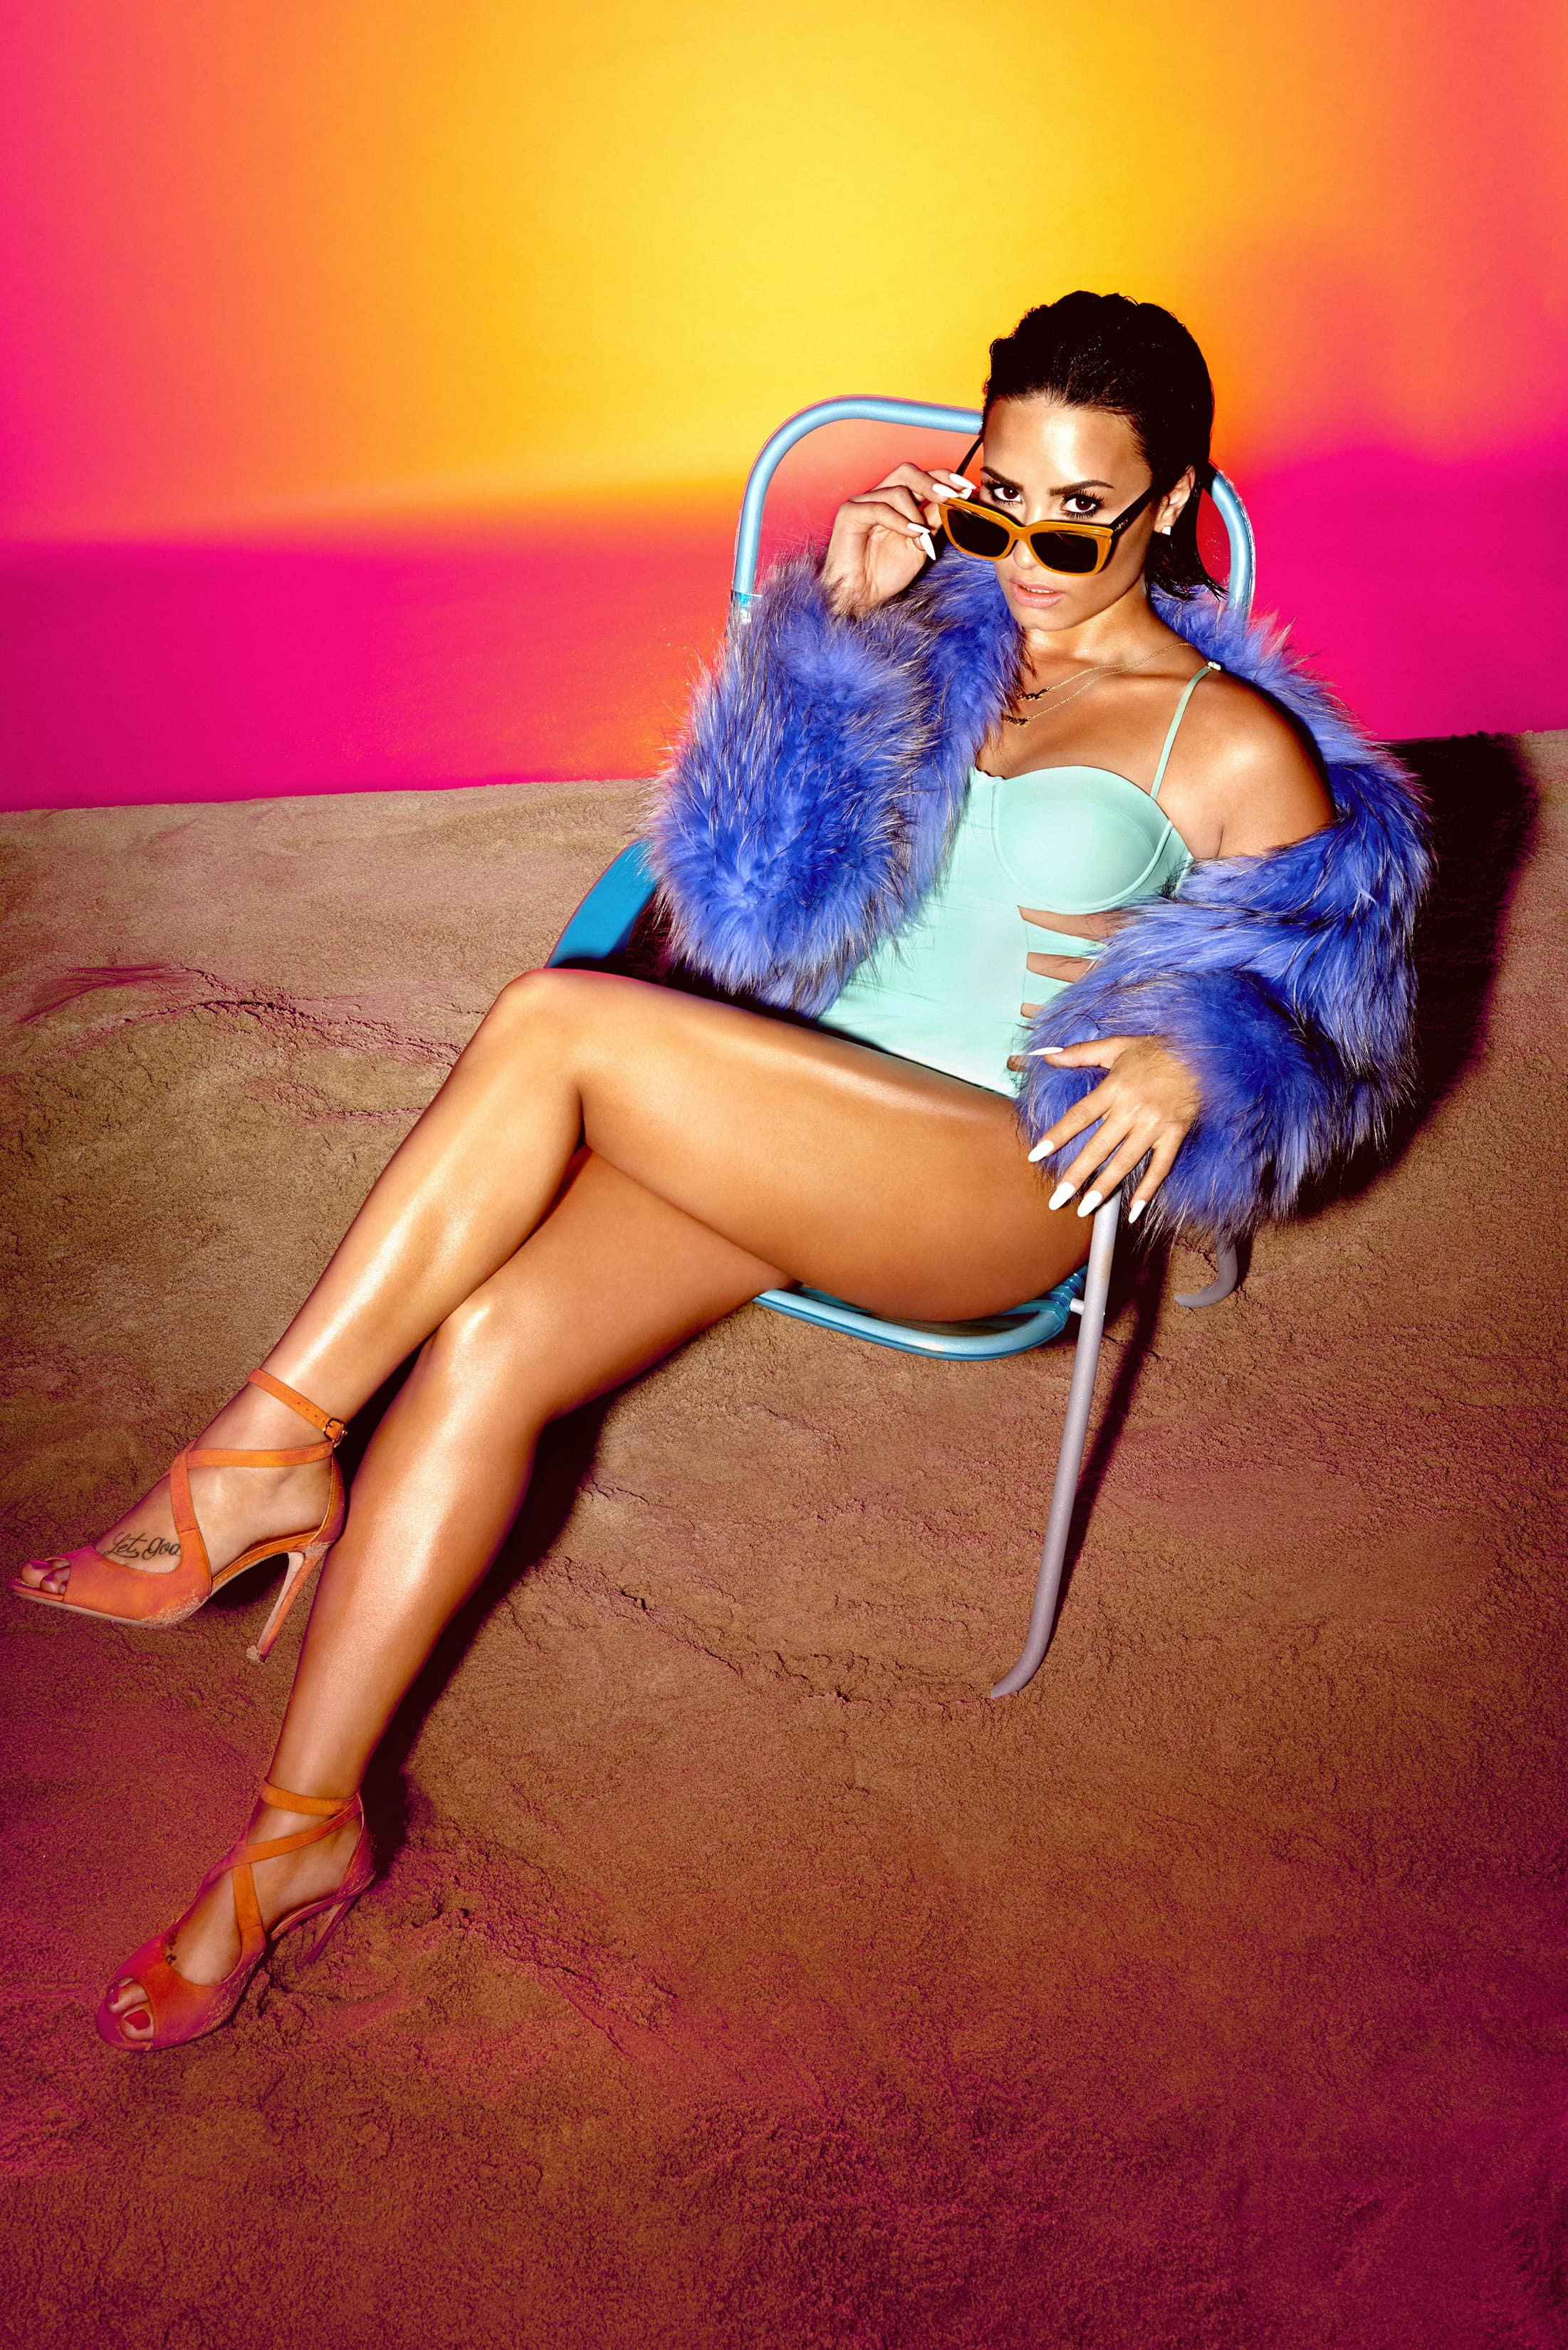 Cool for the Summer (Instrumental)